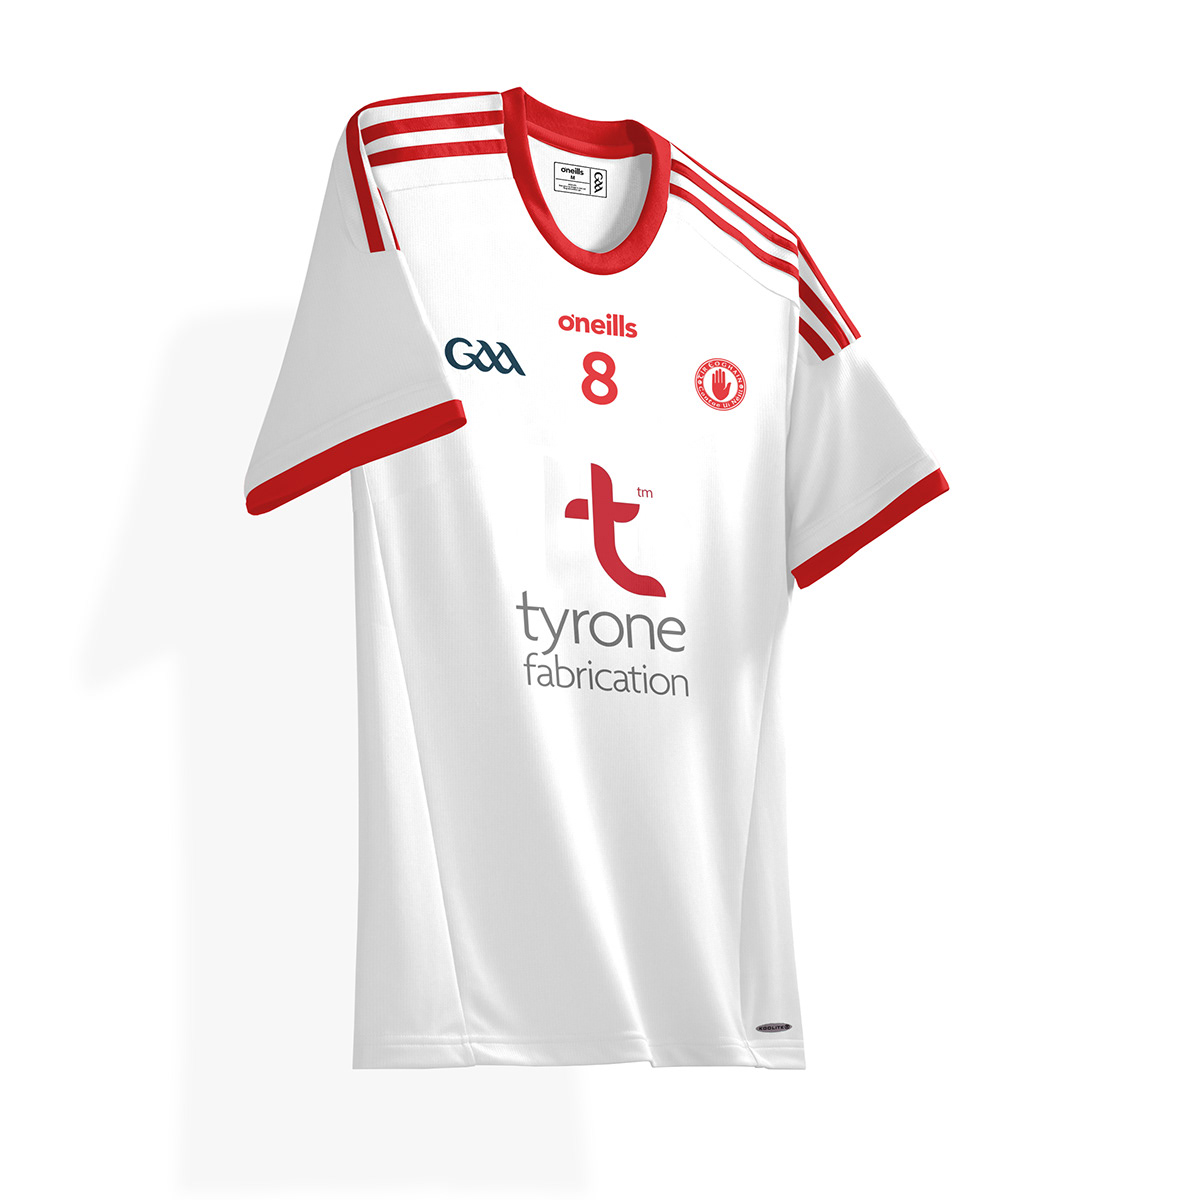 f6e1be1362a64 Save to Collection. Follow Following Unfollow. O Neills® GAA Jersey  Concepts 2018 19